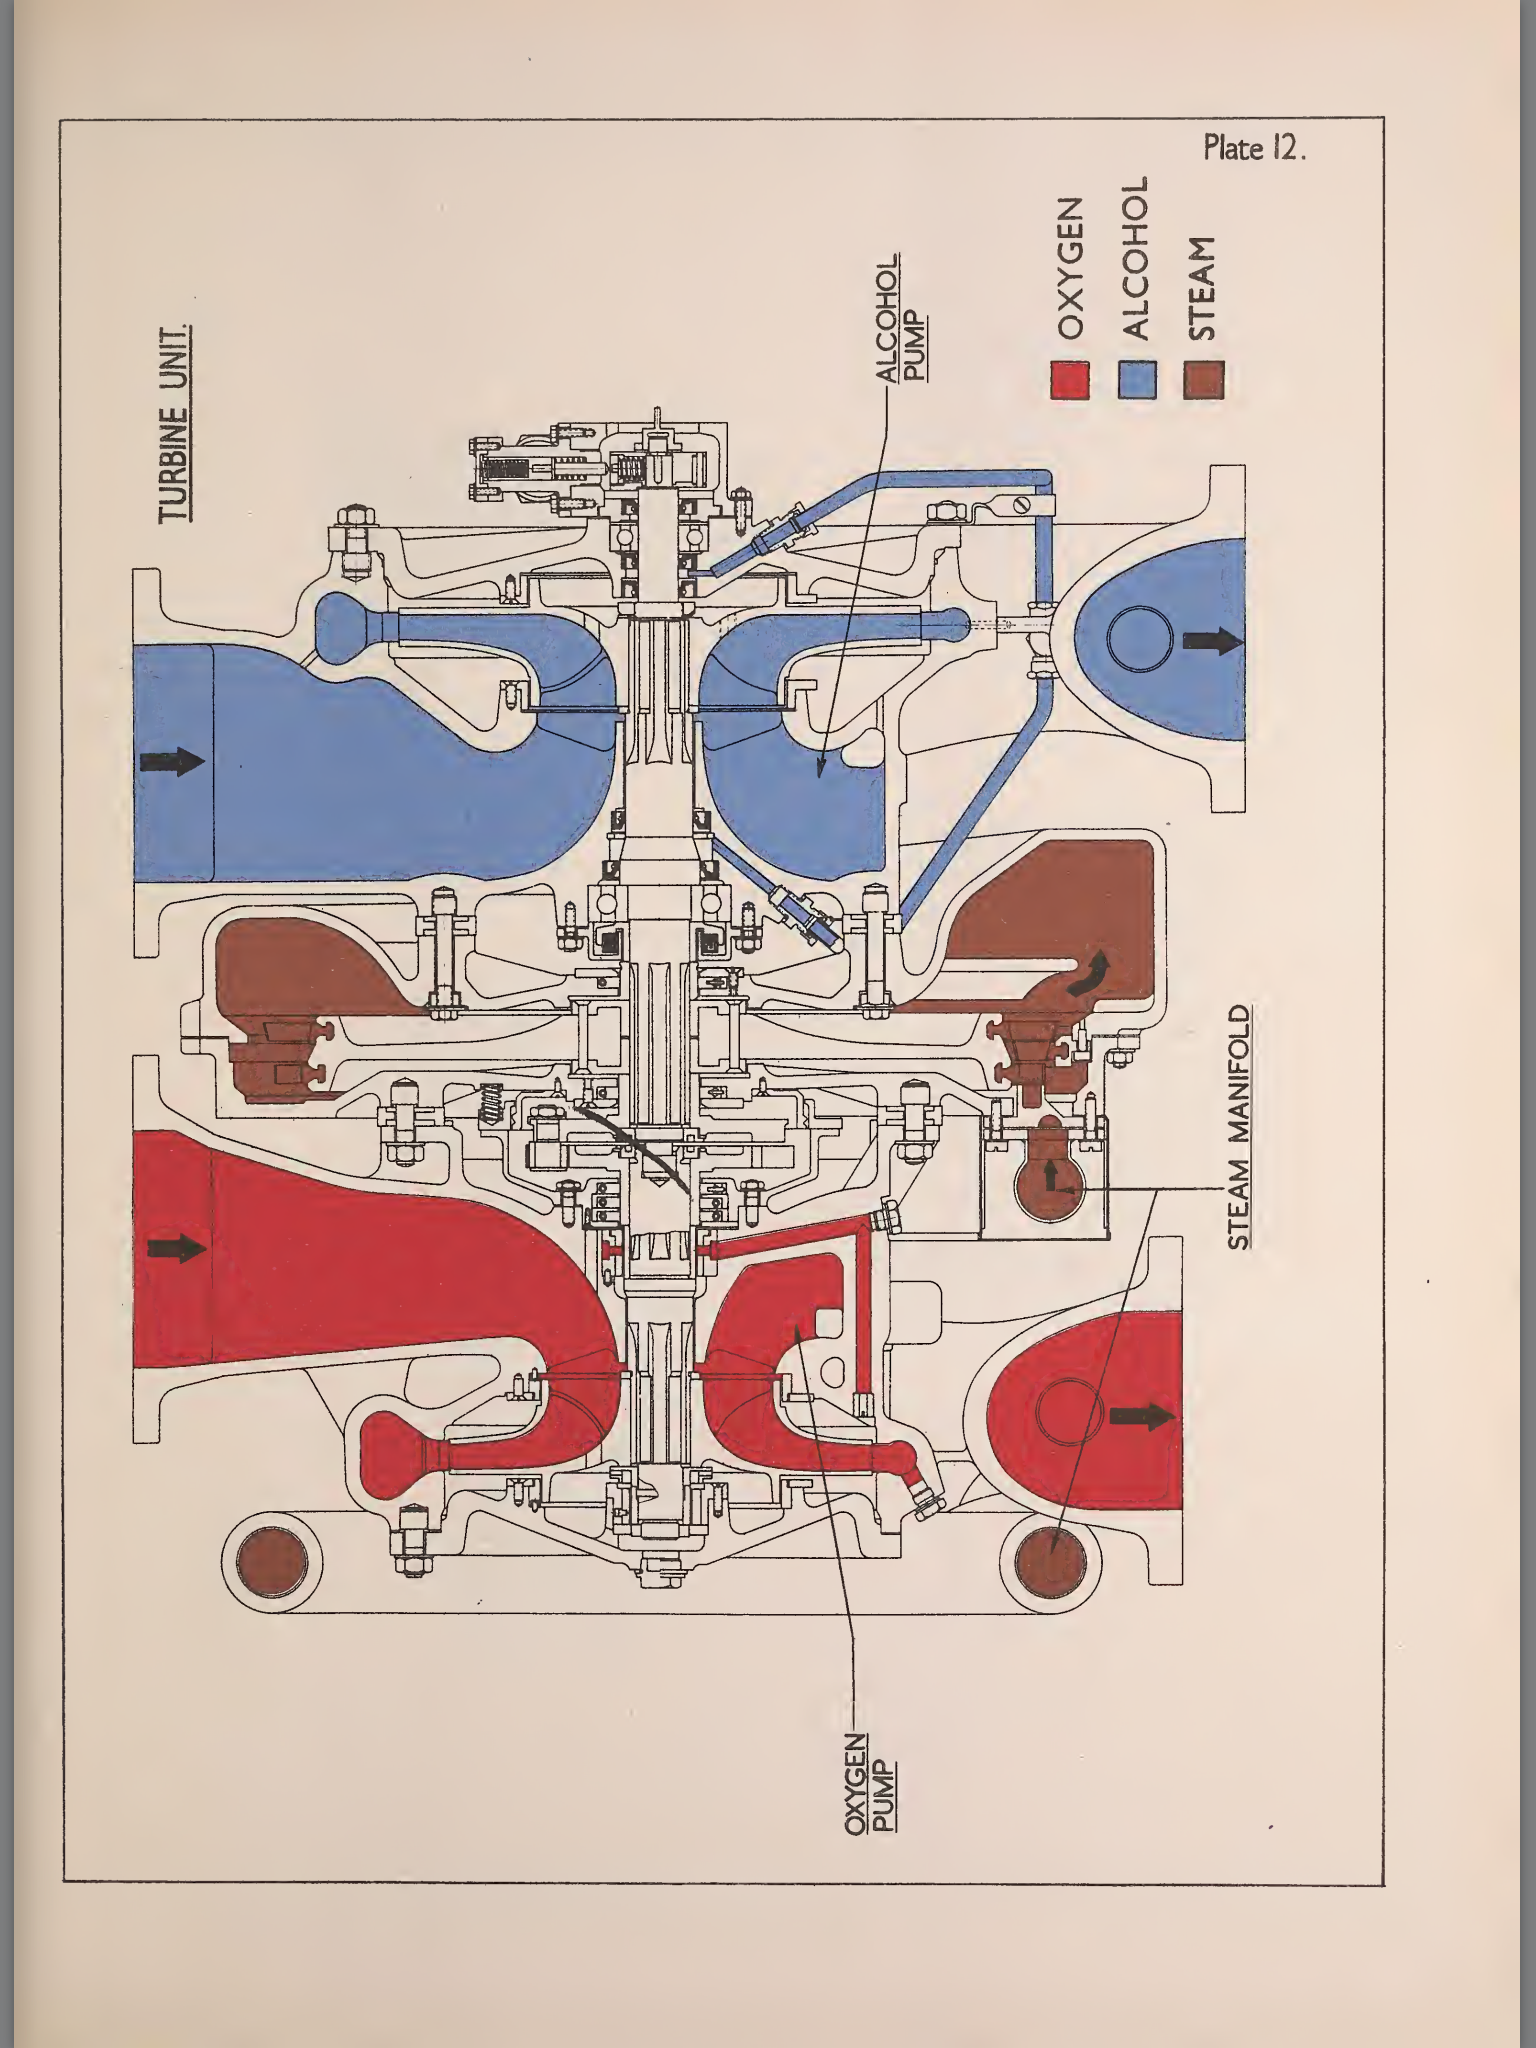 medium resolution of v 2 rocket turbopump diagram rocket engine jet engine gas turbine aerospace